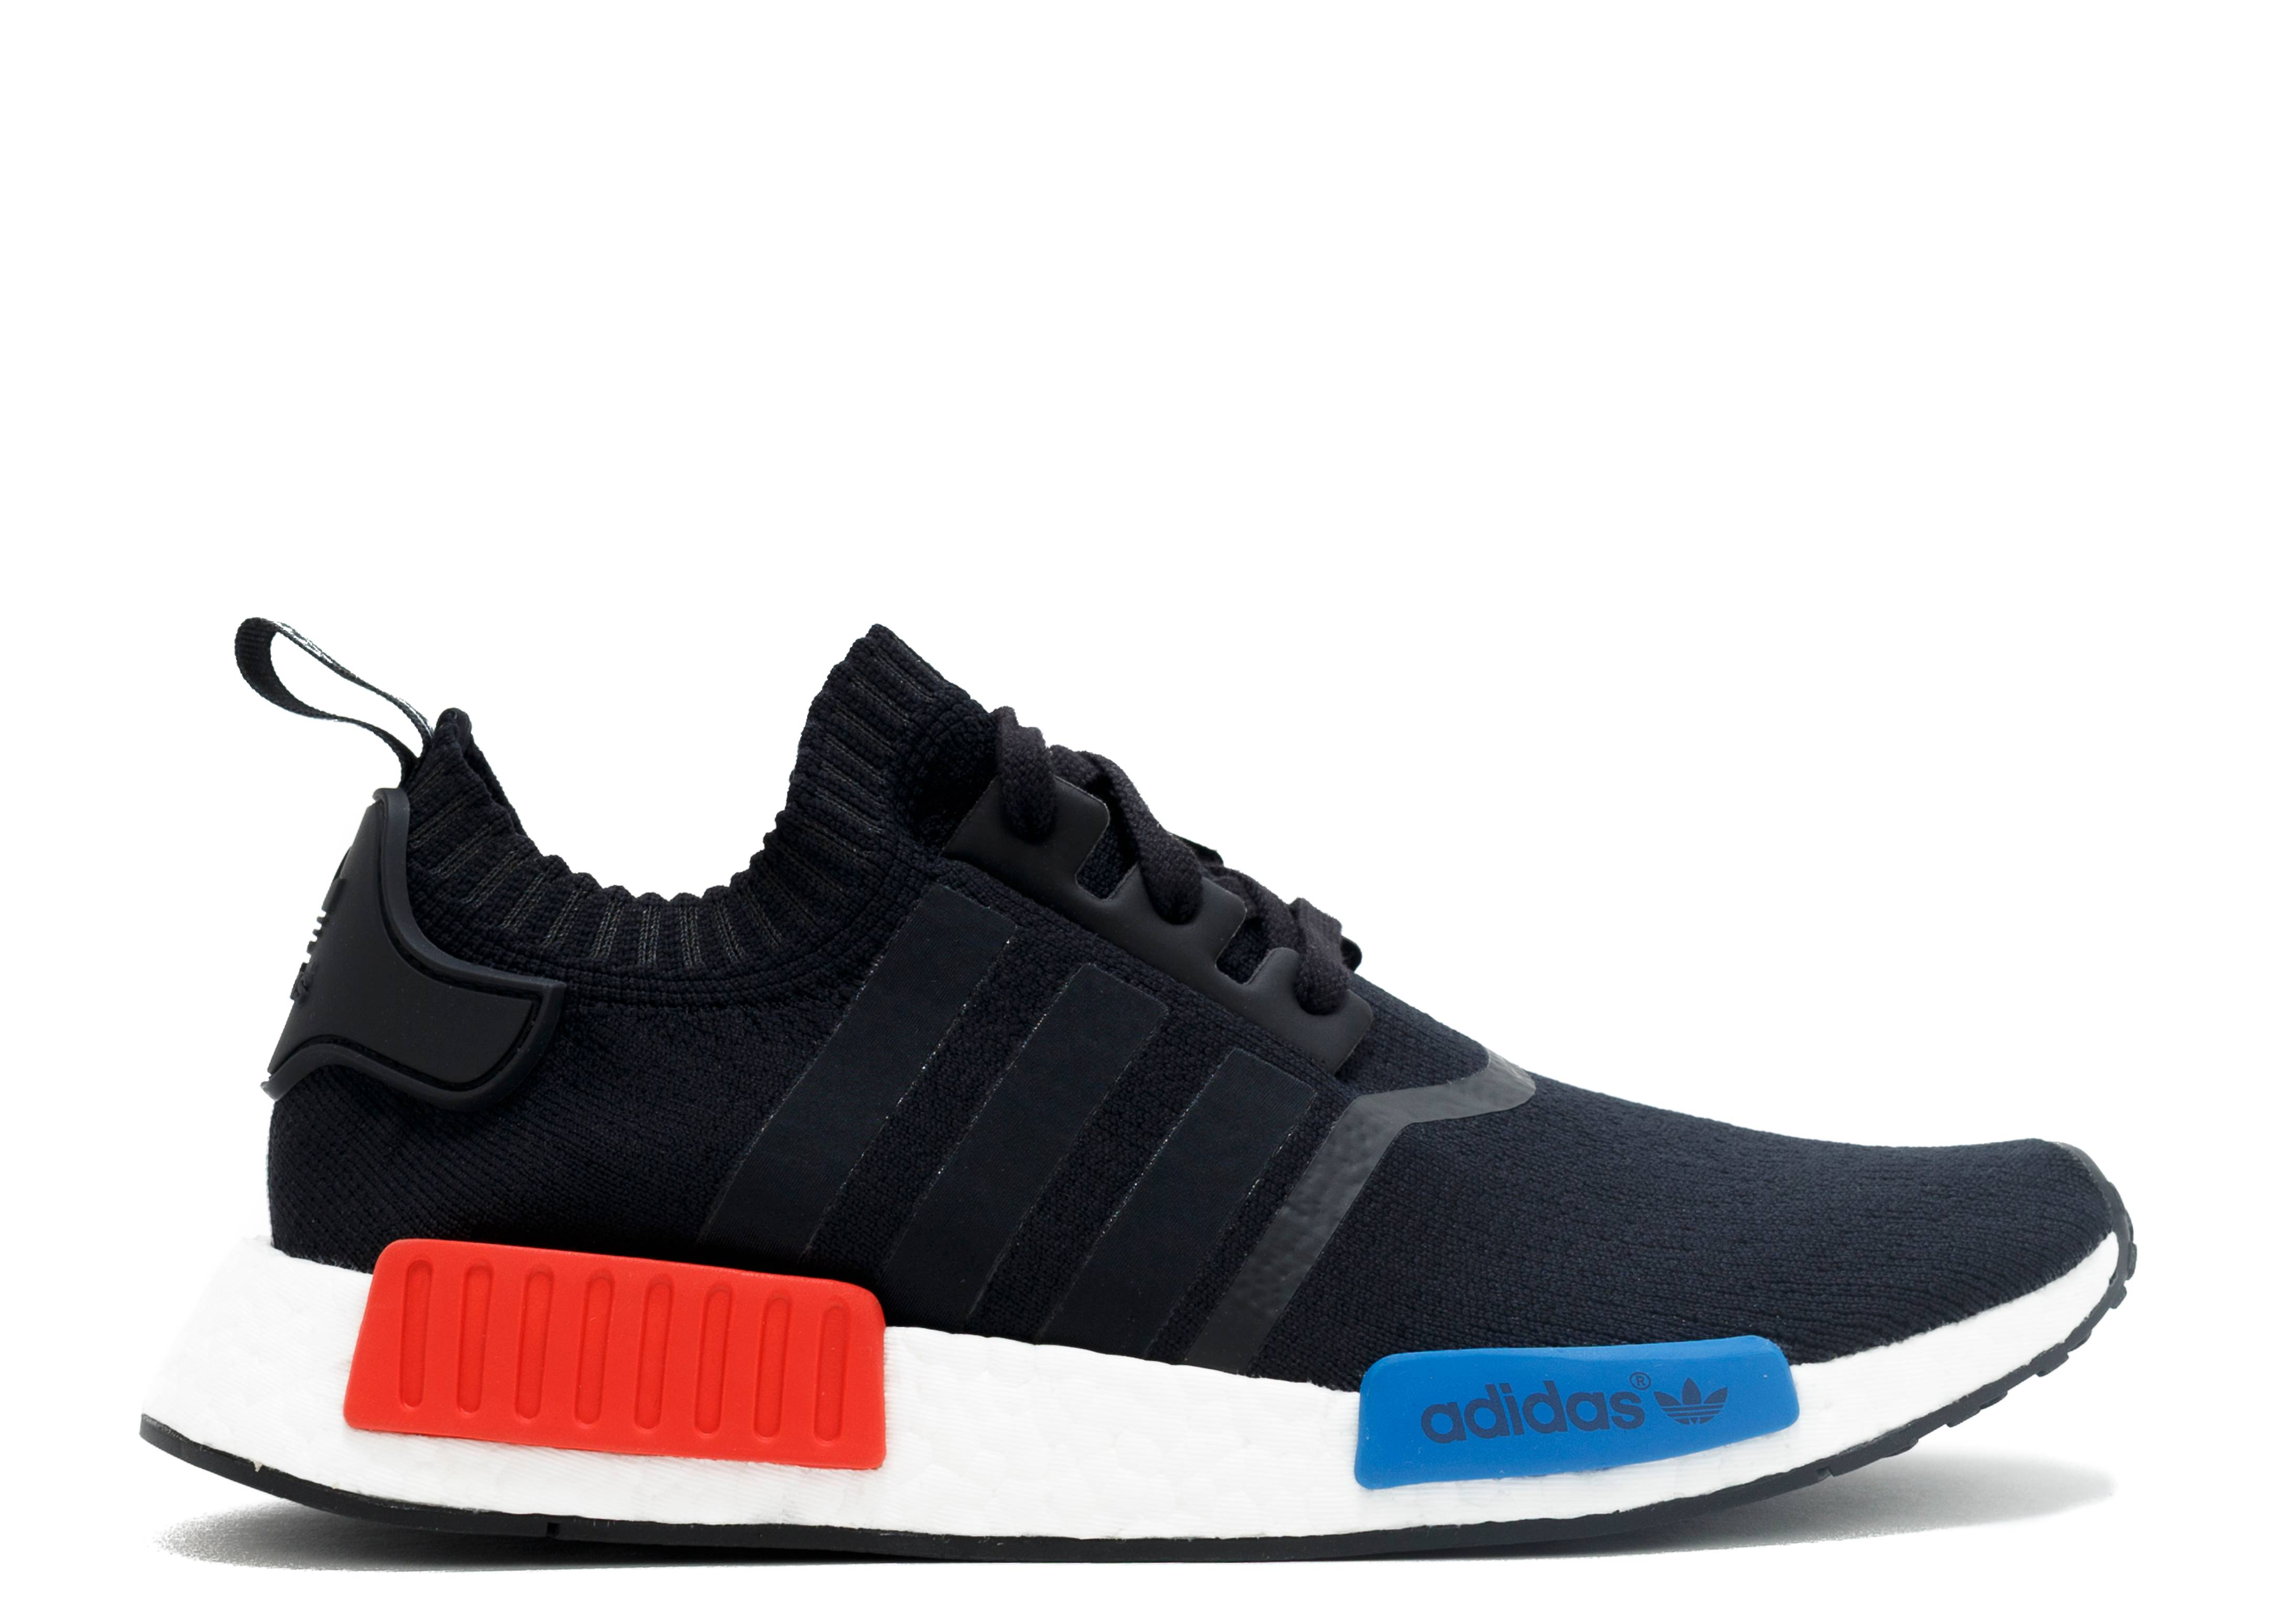 Adidas NMD R1 FOOTLOCKER Exclusive Rainbow Black Blue Red